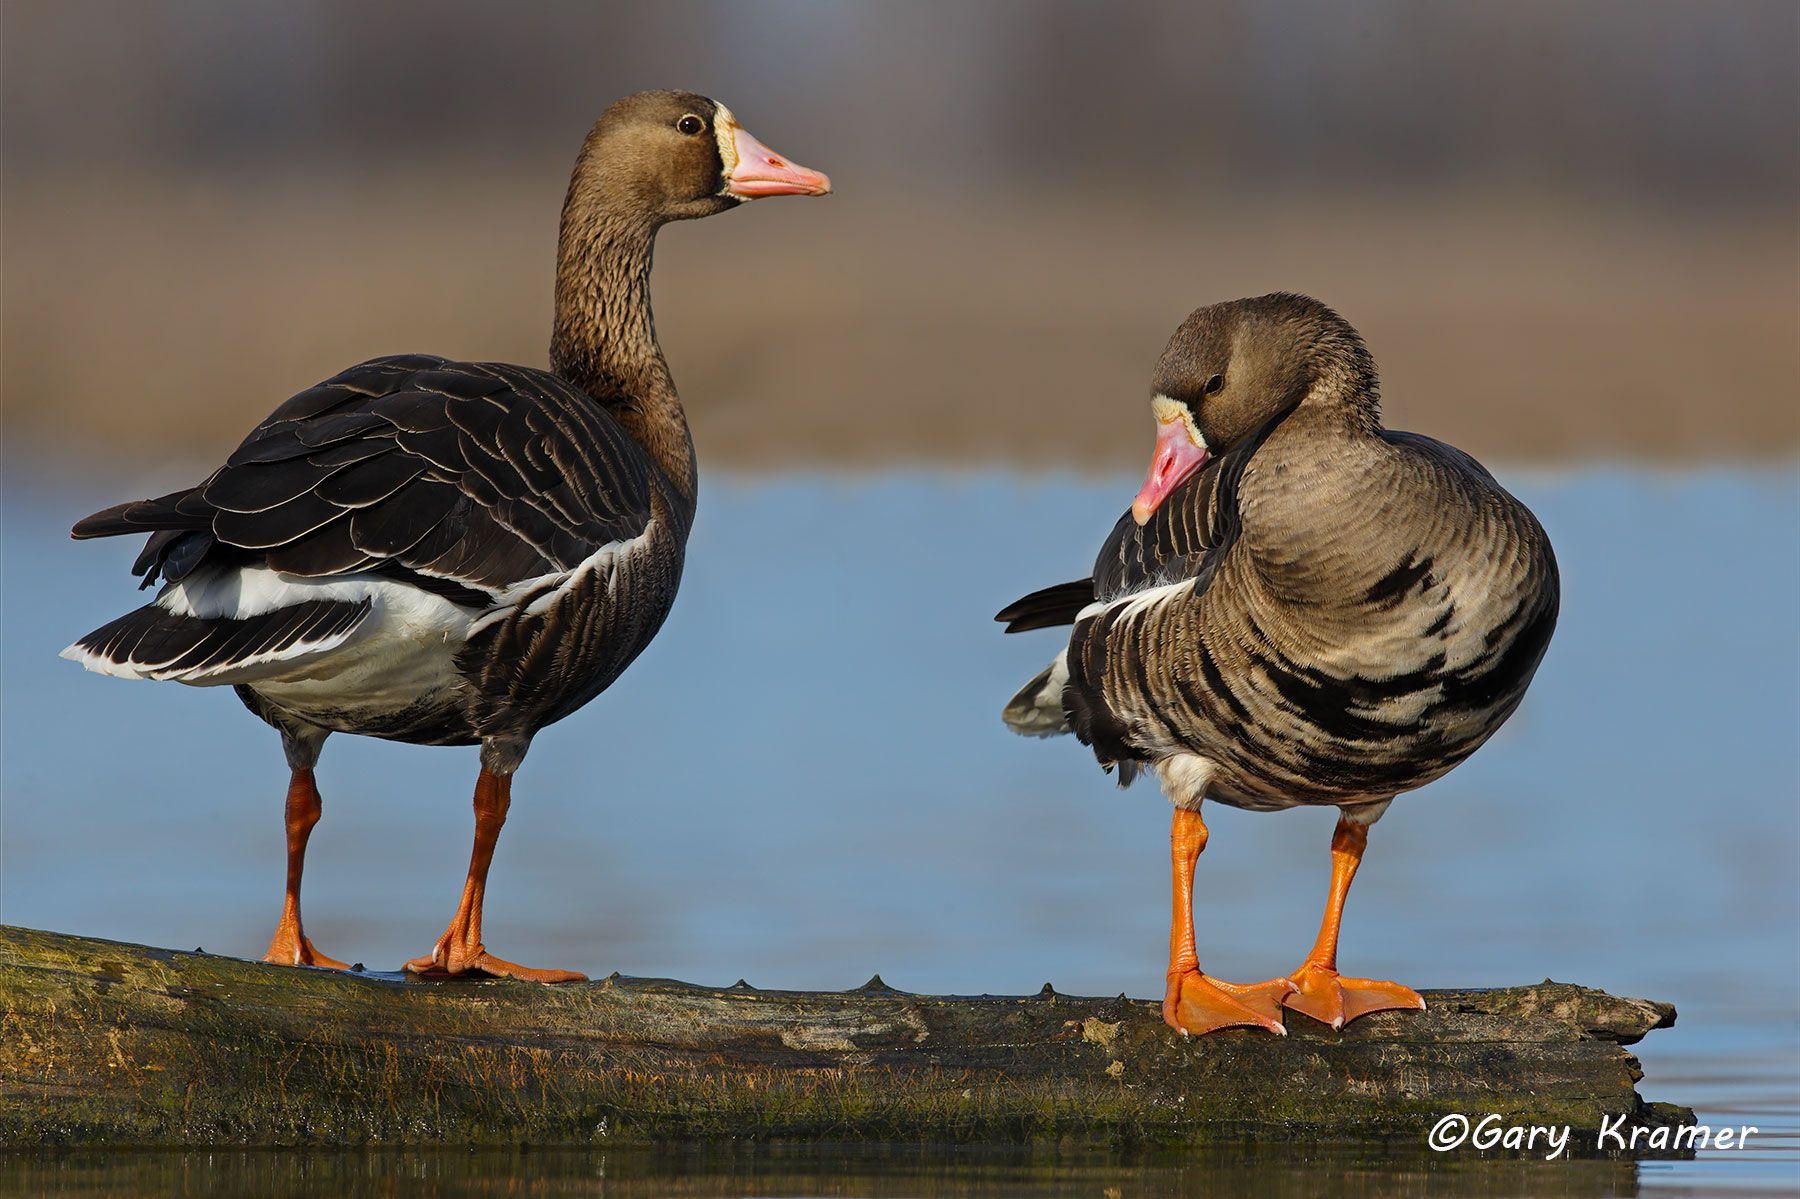 White-fronted Goose (Anser albifrons) - NBWWf#1886d